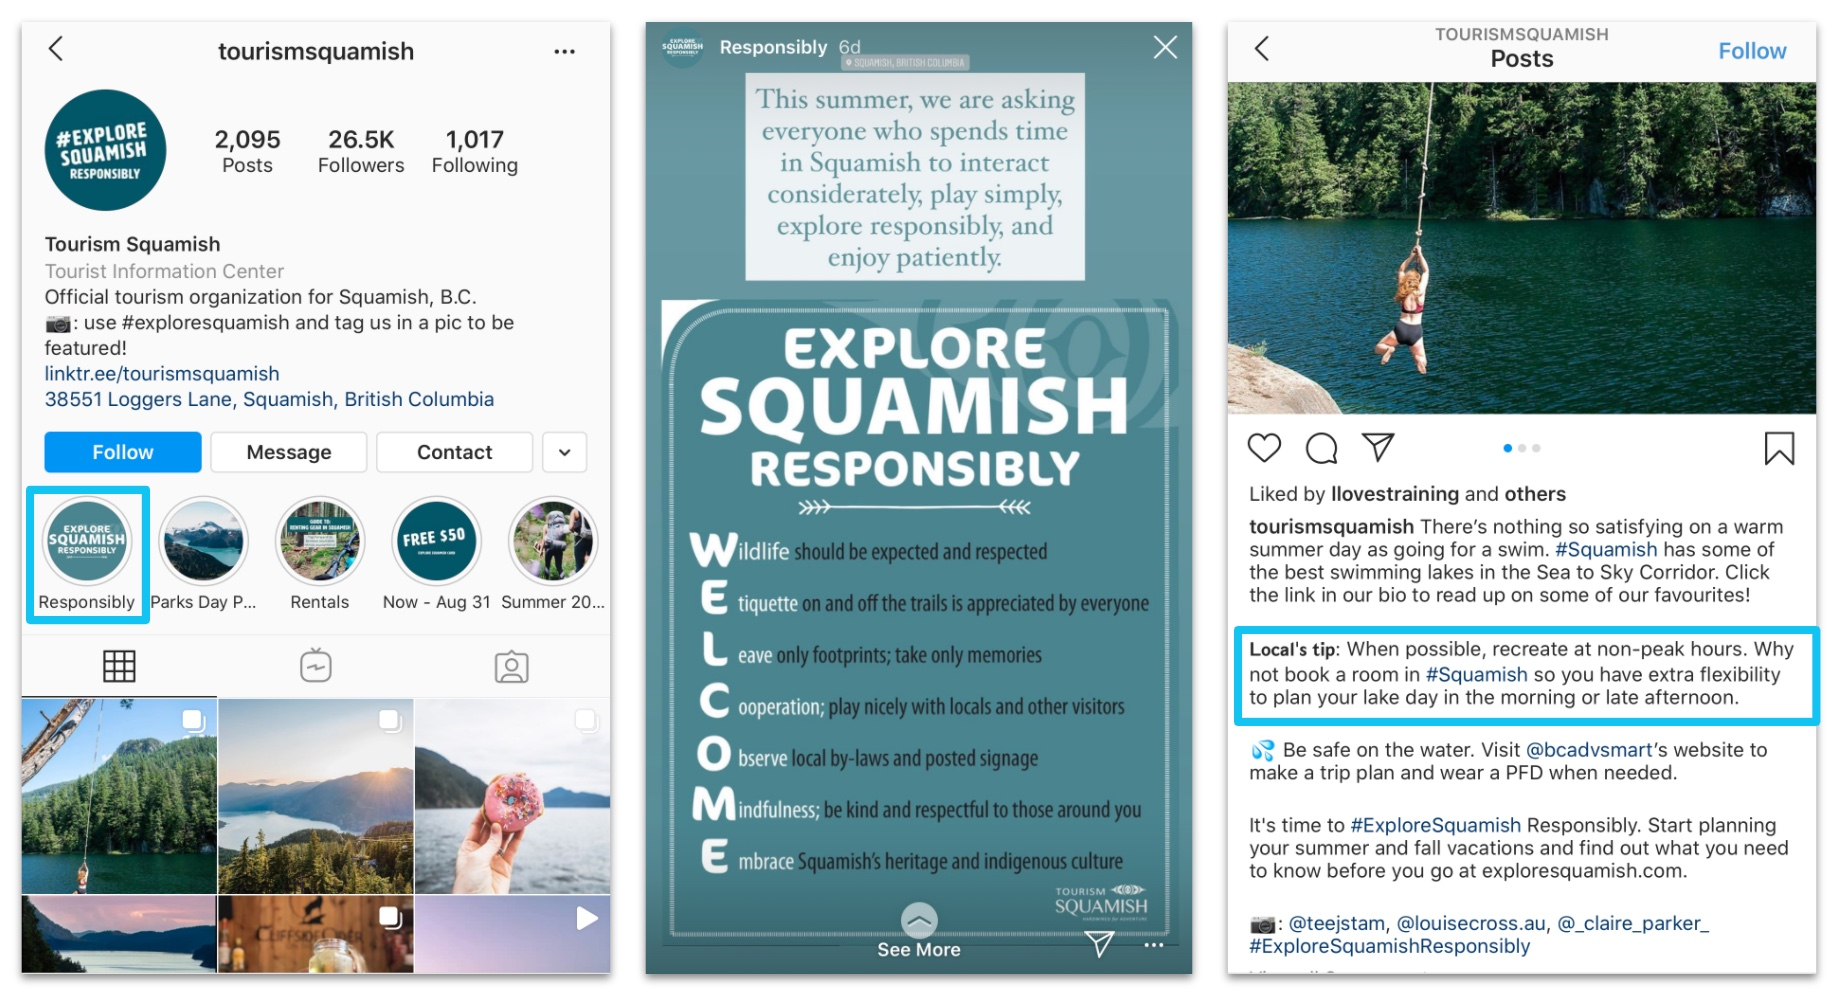 Explore Squamish messaging social media